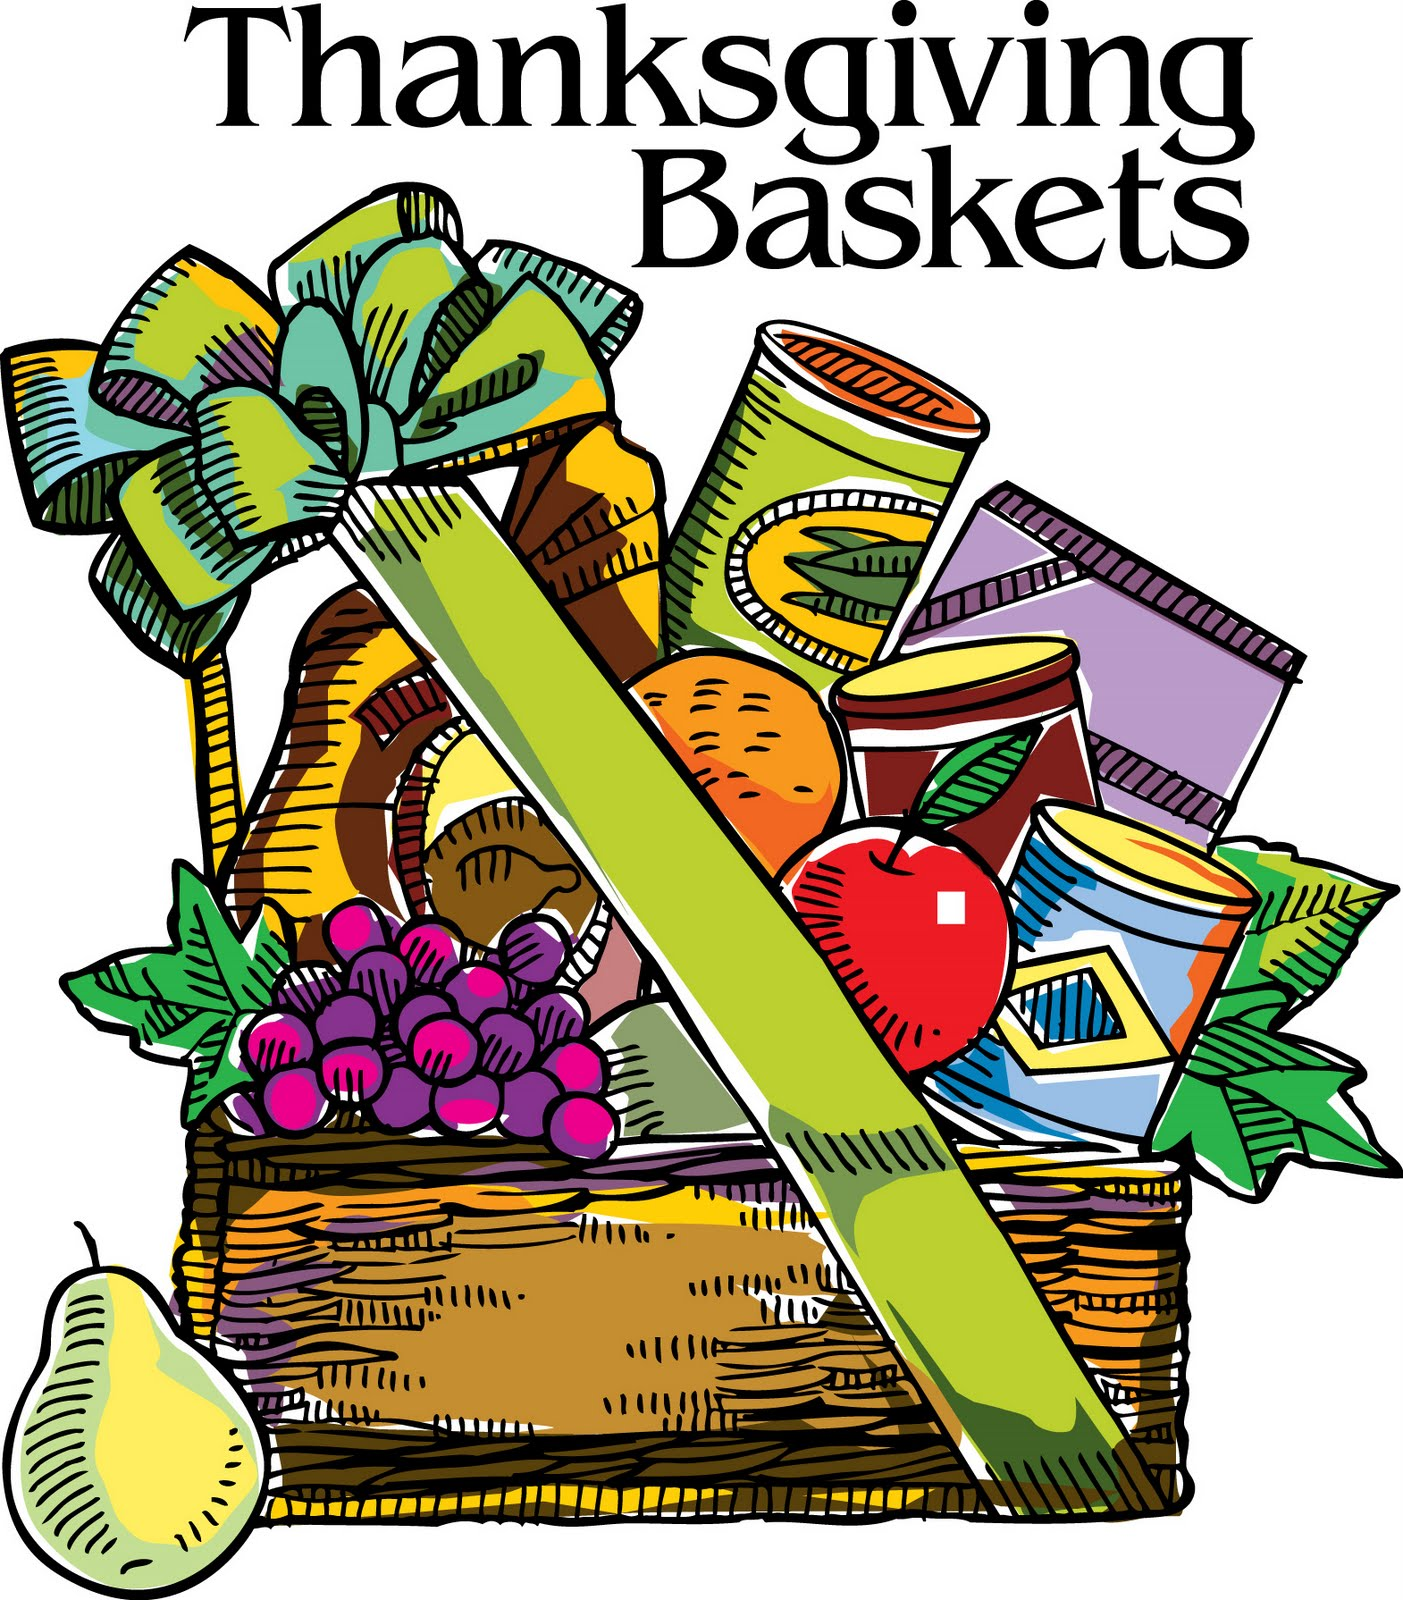 Thanksgiving food drive clipart.